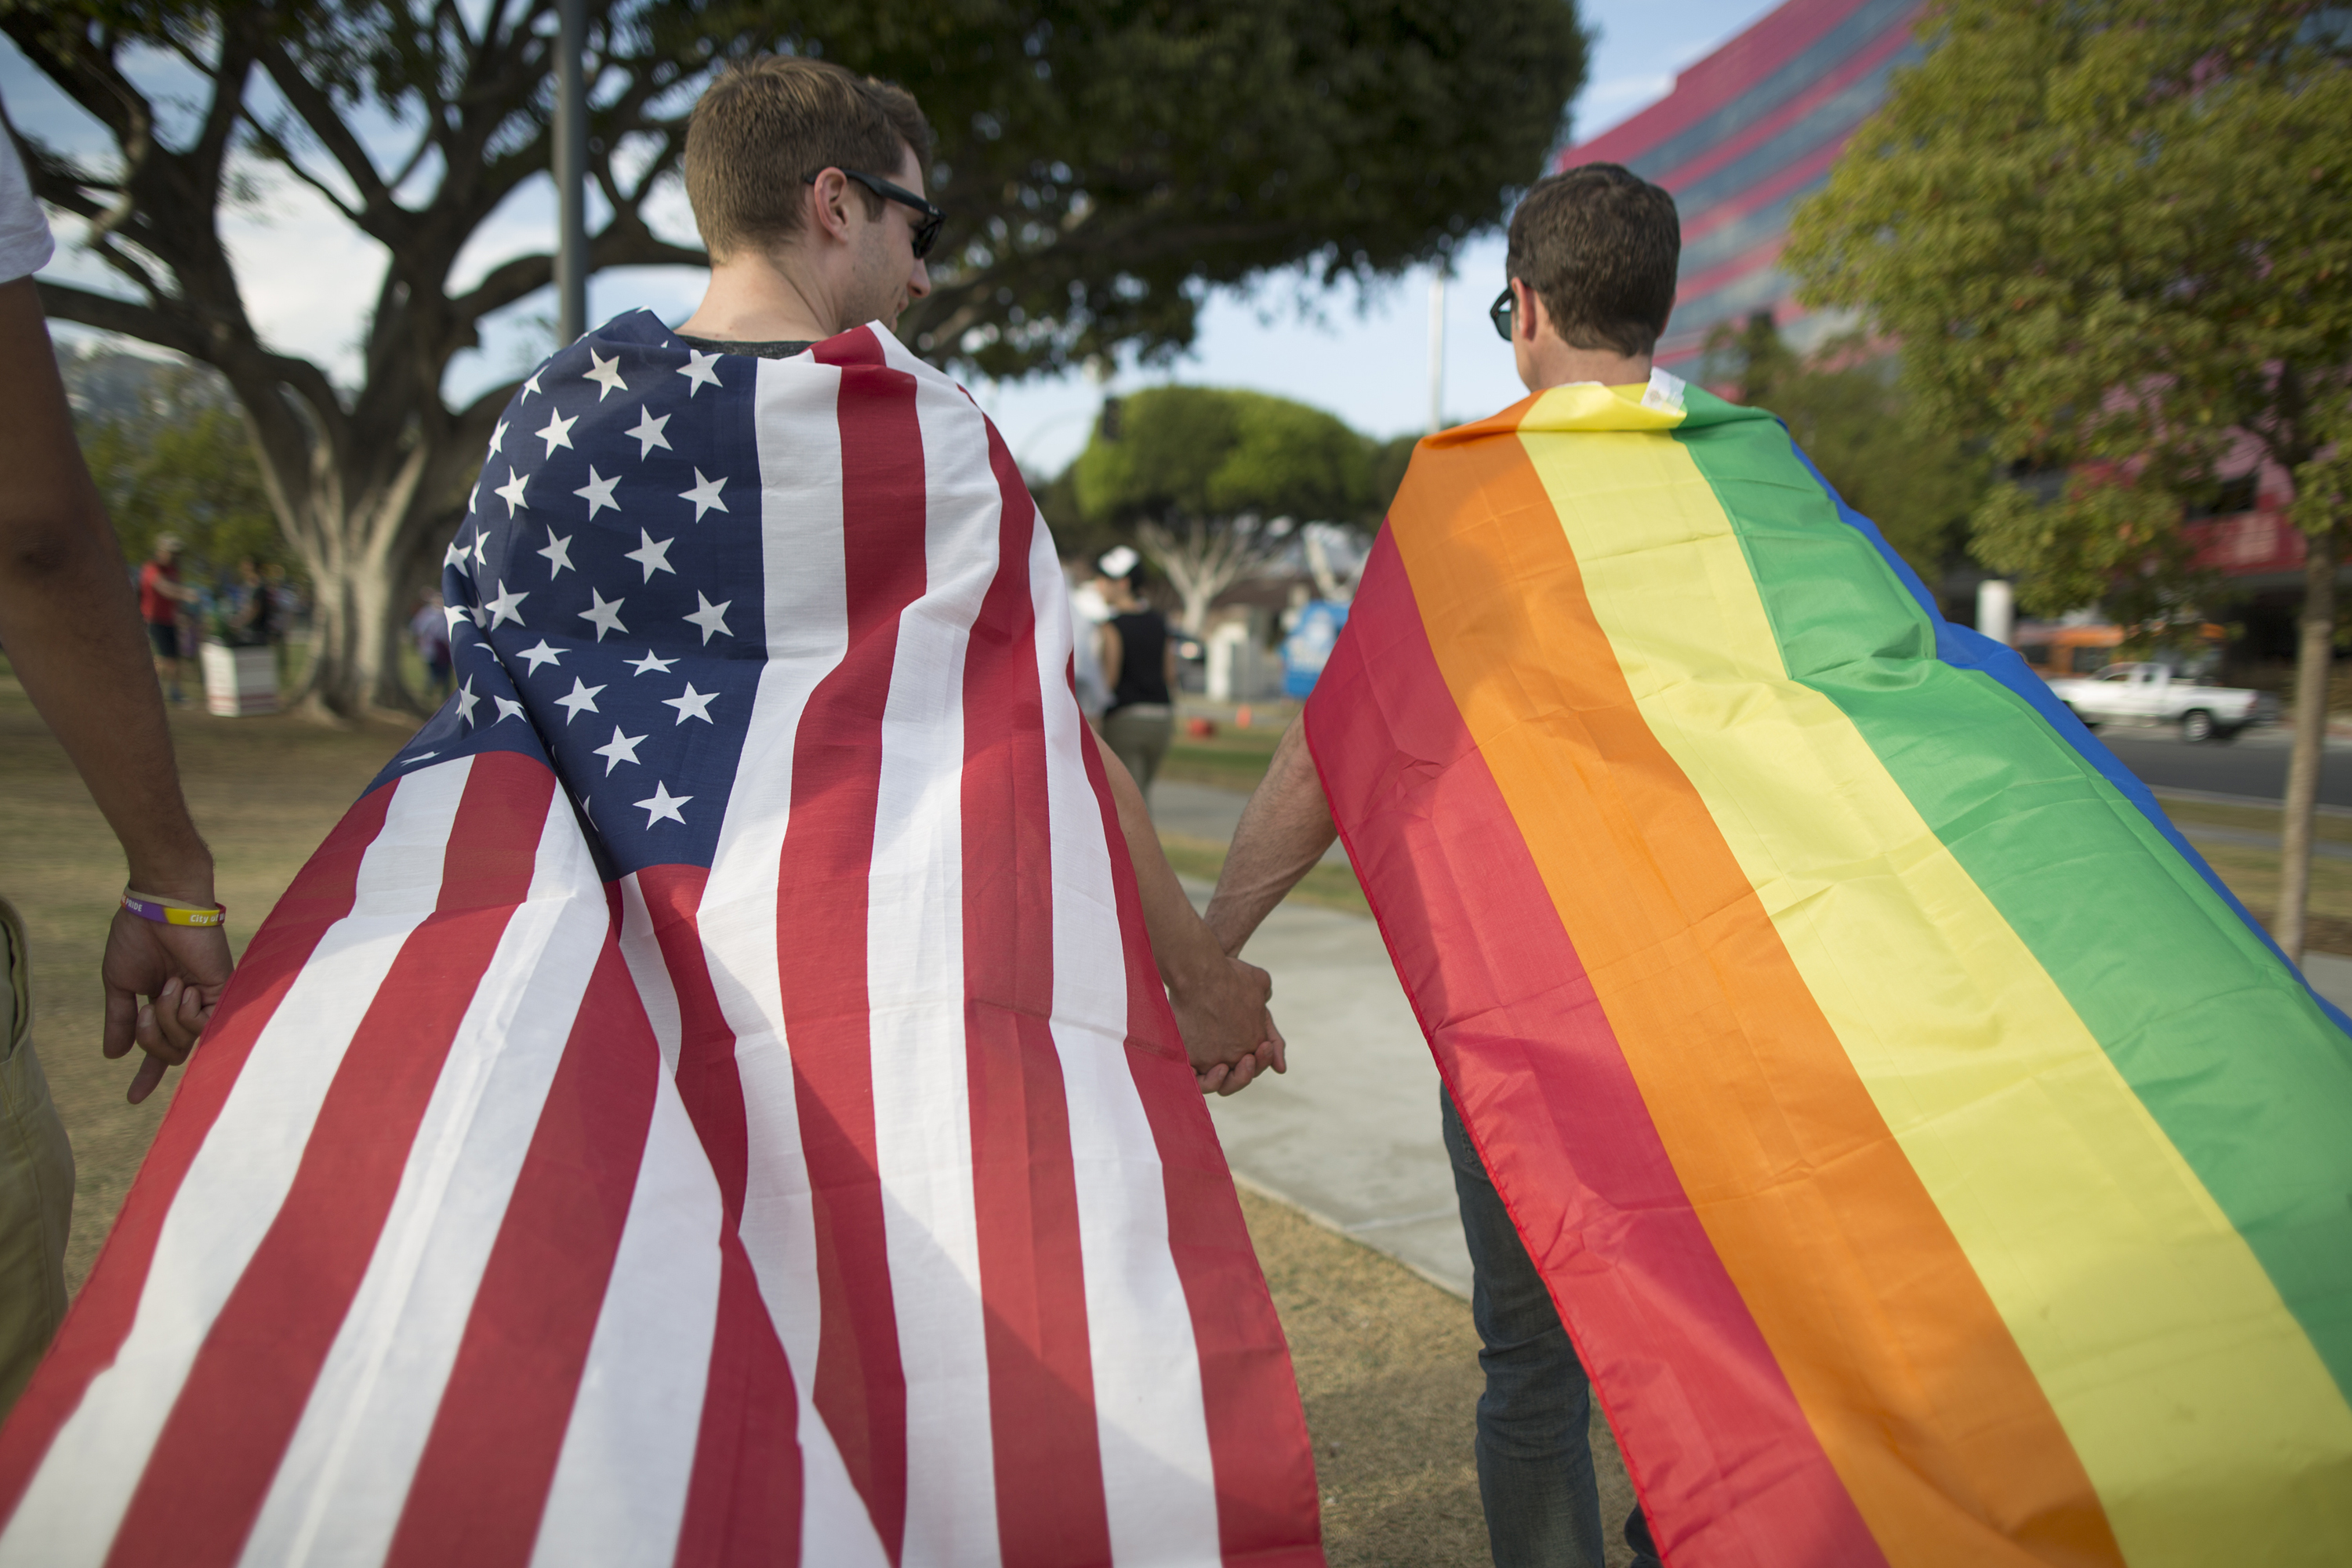 A federal court just made a very big decision for gay rights. Seriously, it's huge.